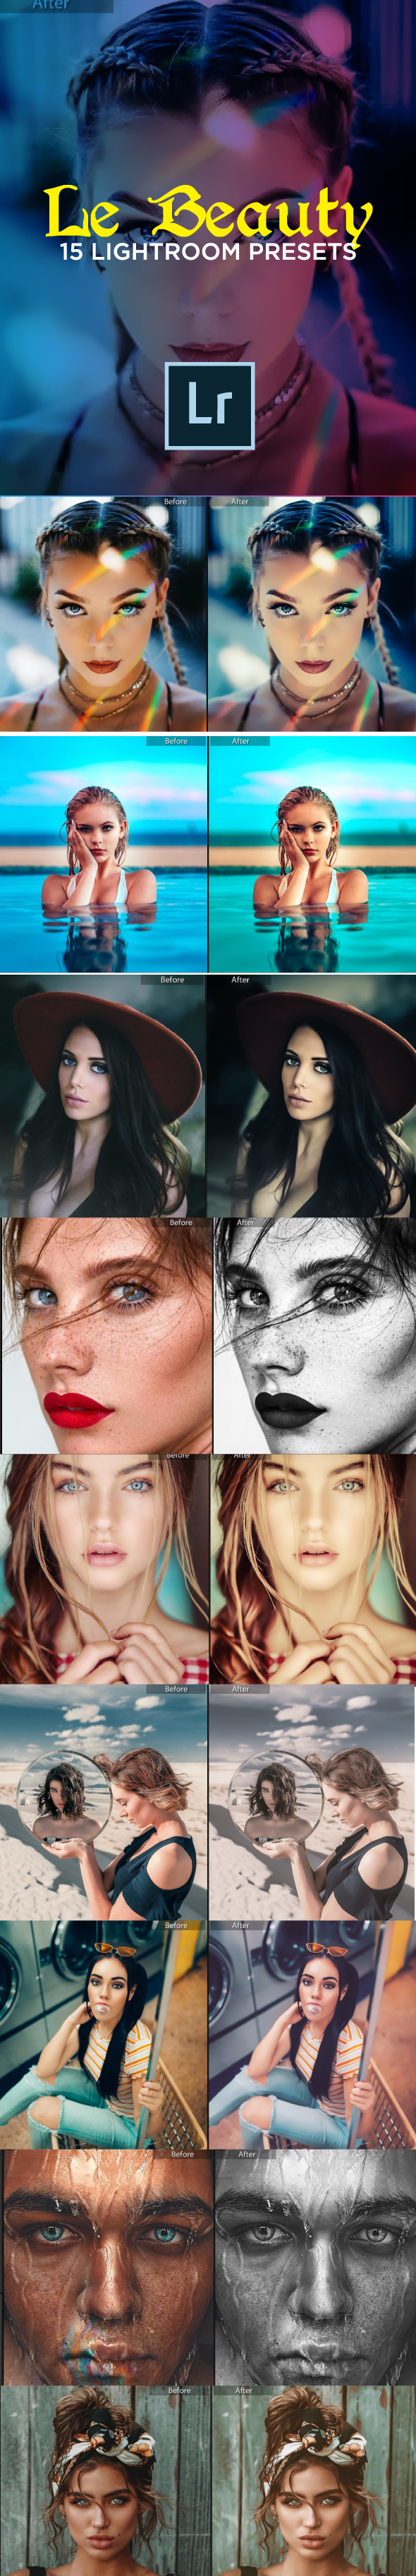 15 Le Beauty Lightroom Presets - Portrait Lightroom Presets